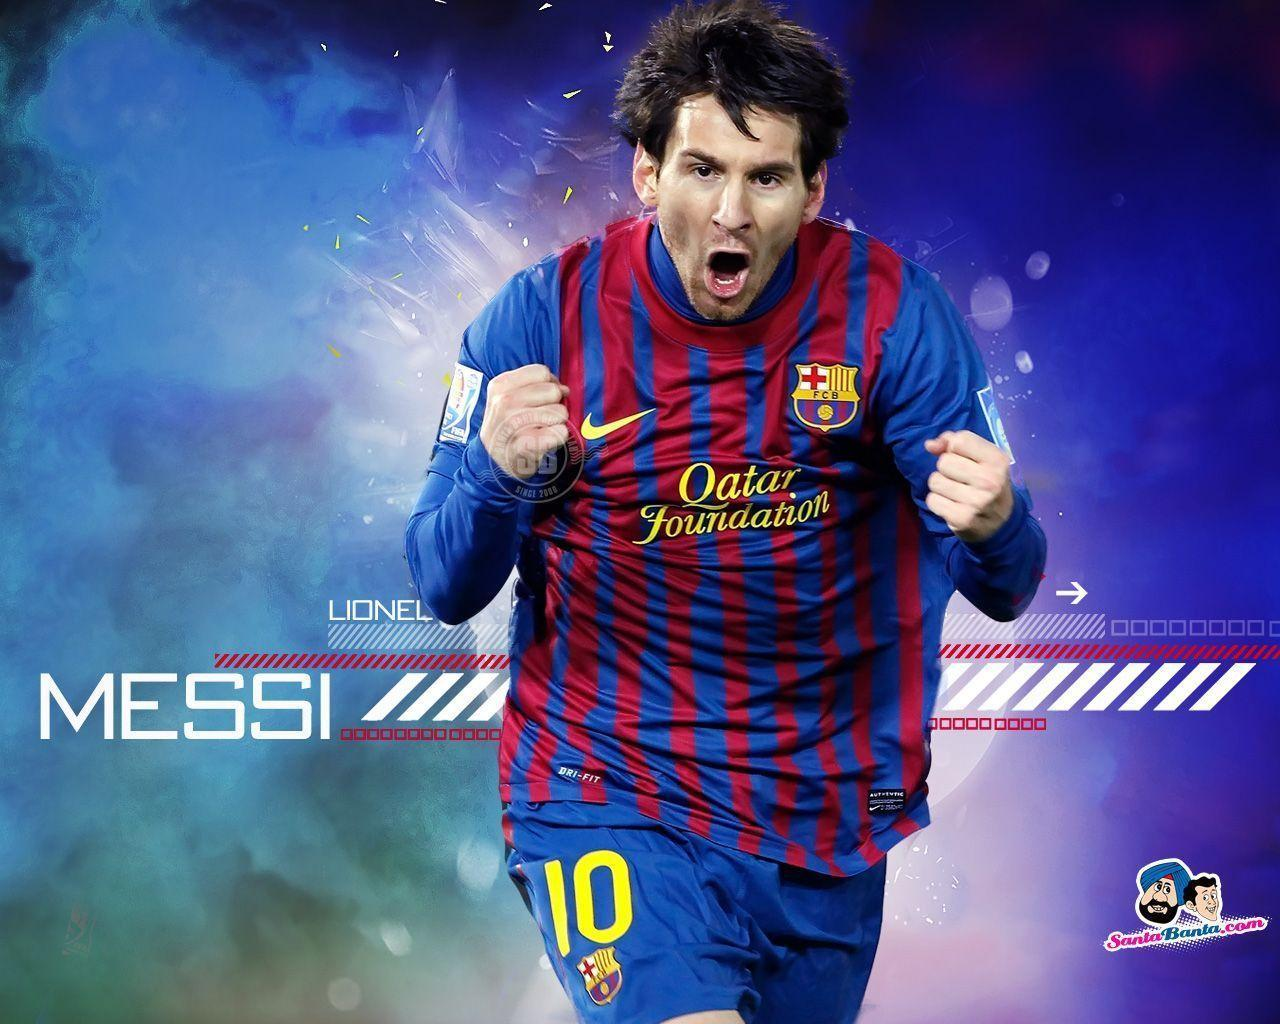 Lionel Messi 2015 1080p HD Wallpapers 1280x1024